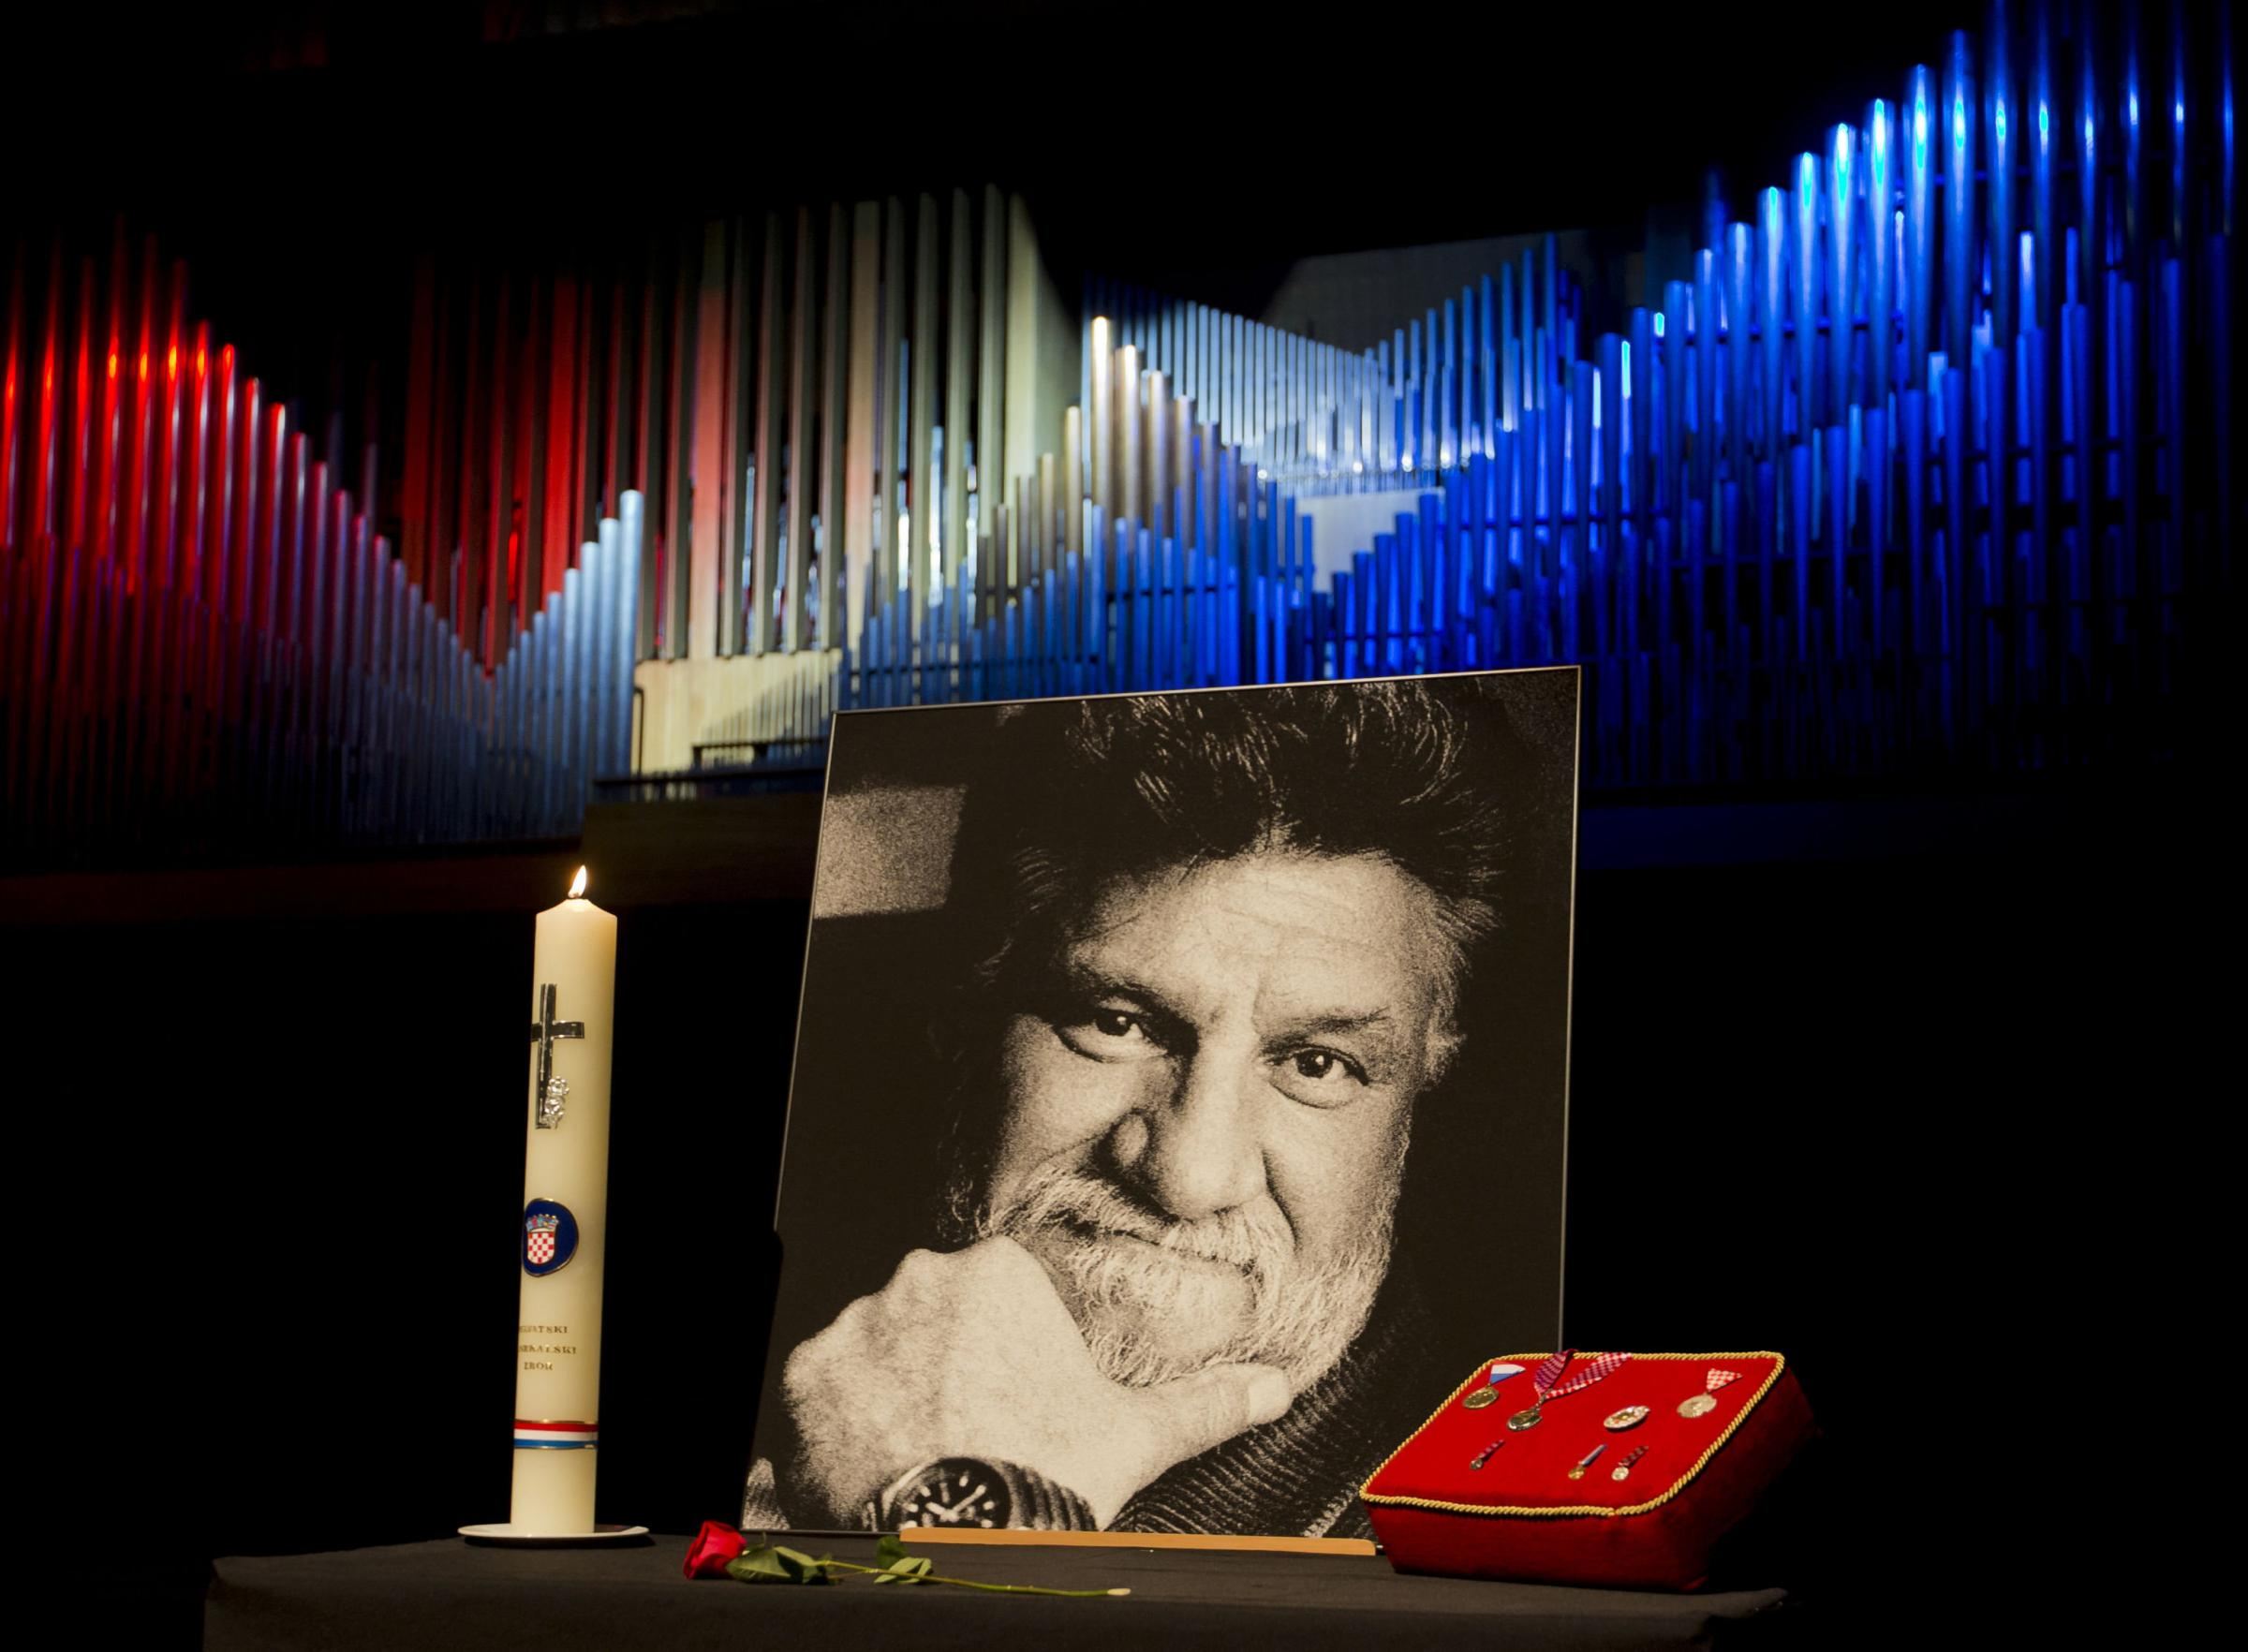 The portrait of late Croatian general Slobodan Praljak who died after taking poison at a United Nations tribunal is displayed at a commemoration ceremony in Zagreb